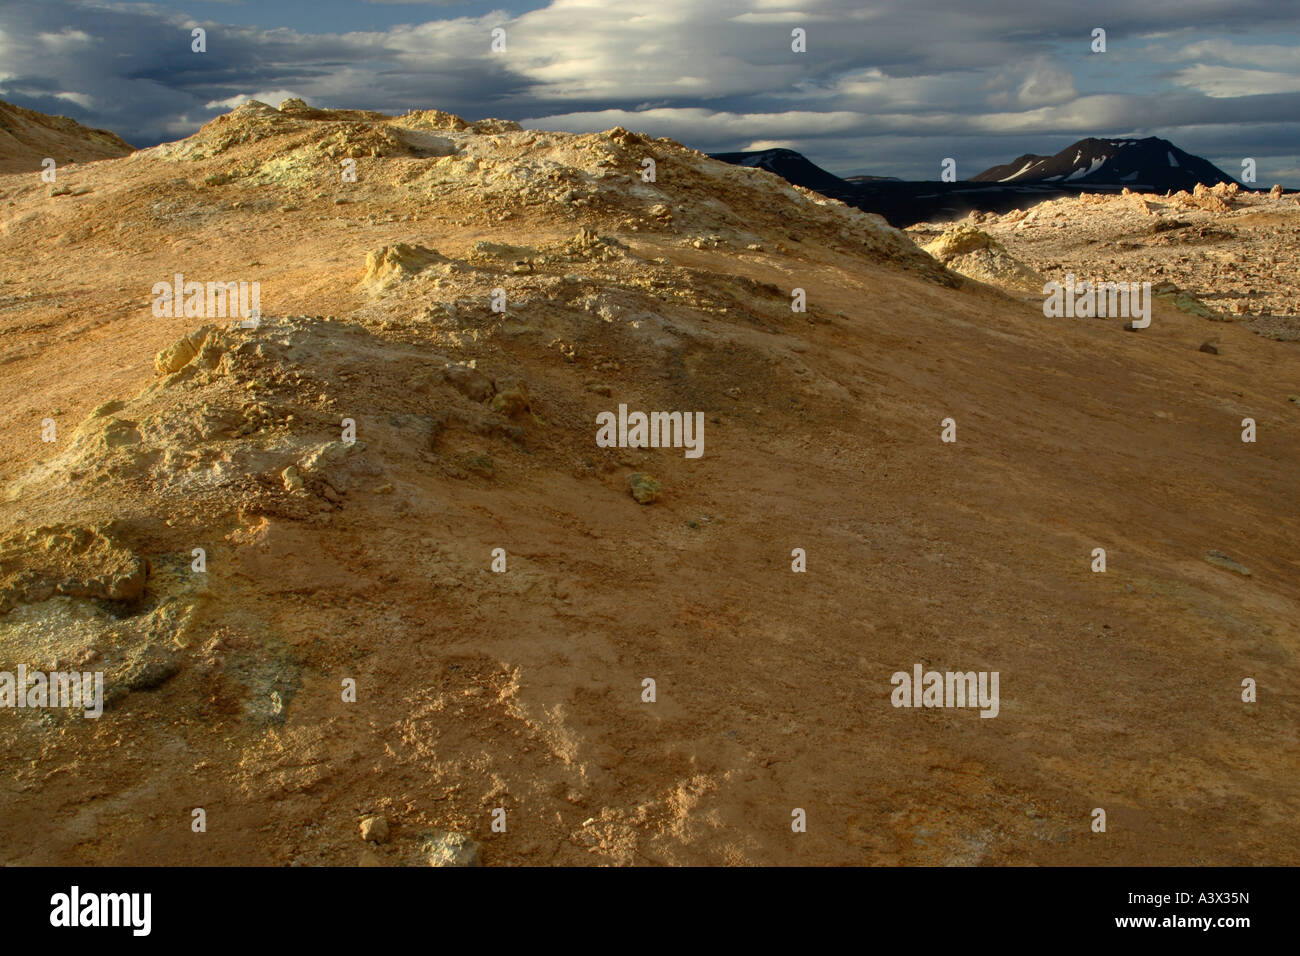 Geothermally active region near Myvatn in Iceland Sulphur rich rock formations and volcanically created hills and - Stock Image